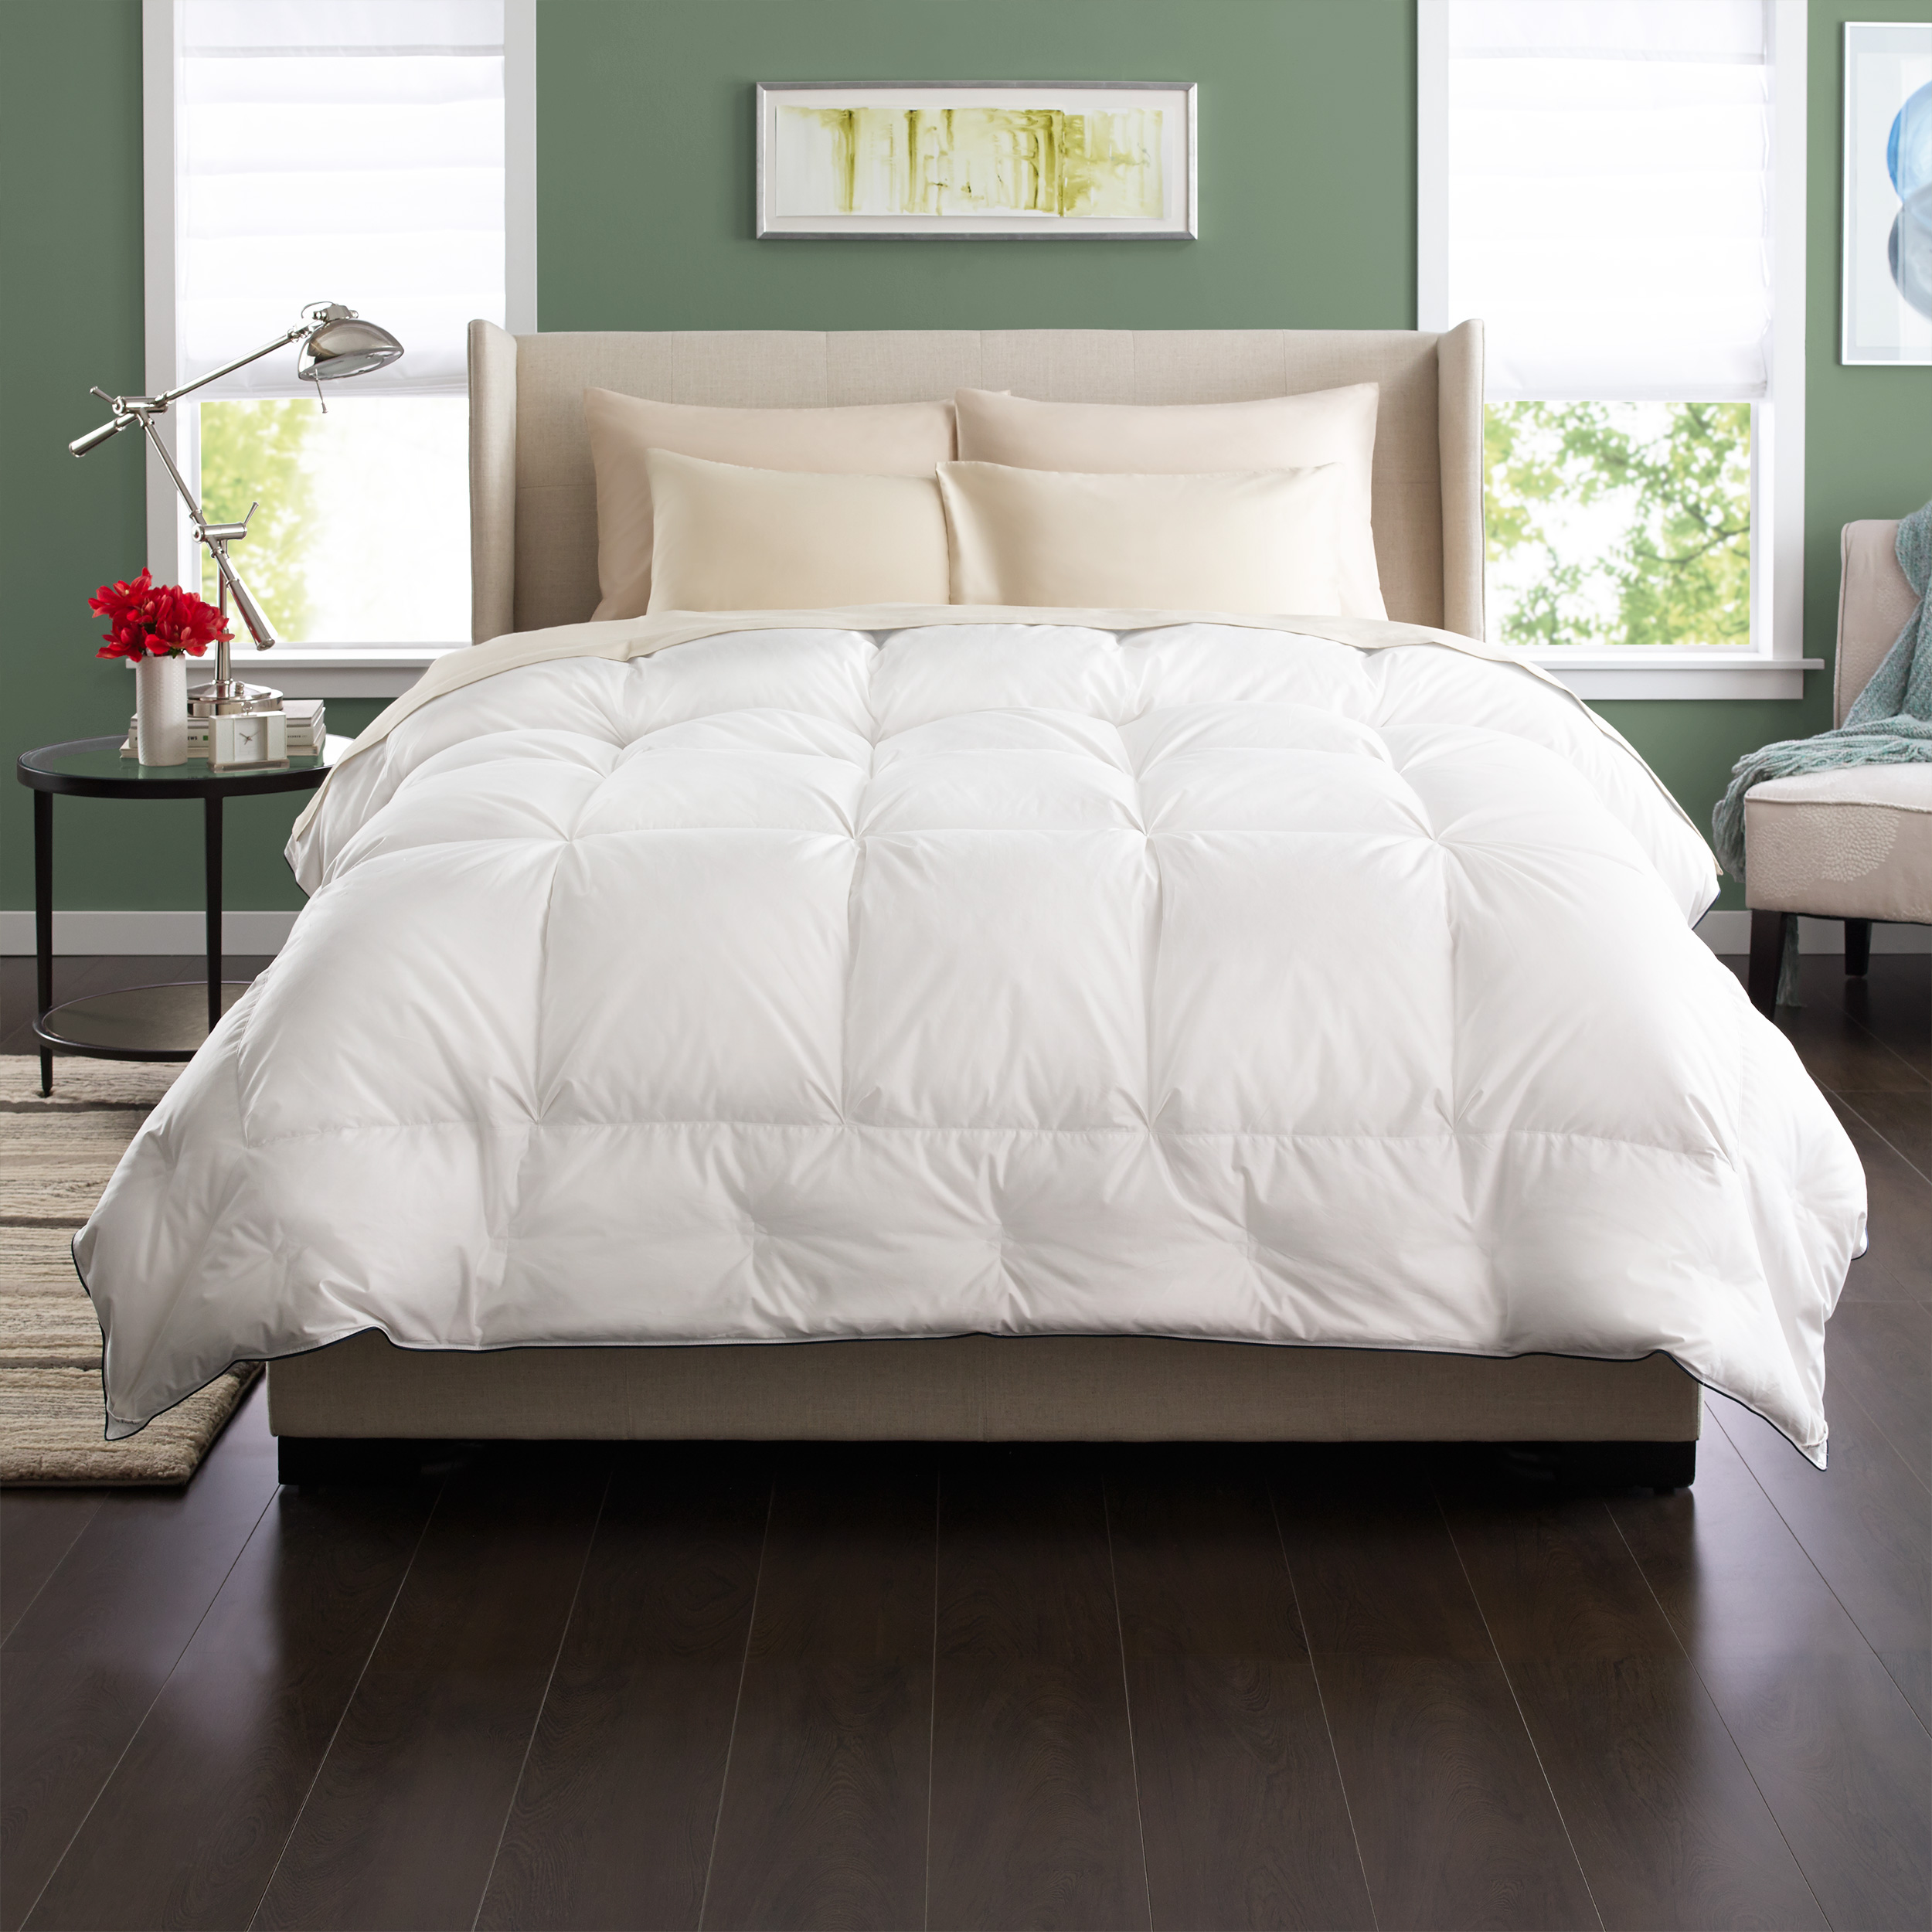 Pacific Coast Comforter | Ll Bean Duvet | Winter Comforter